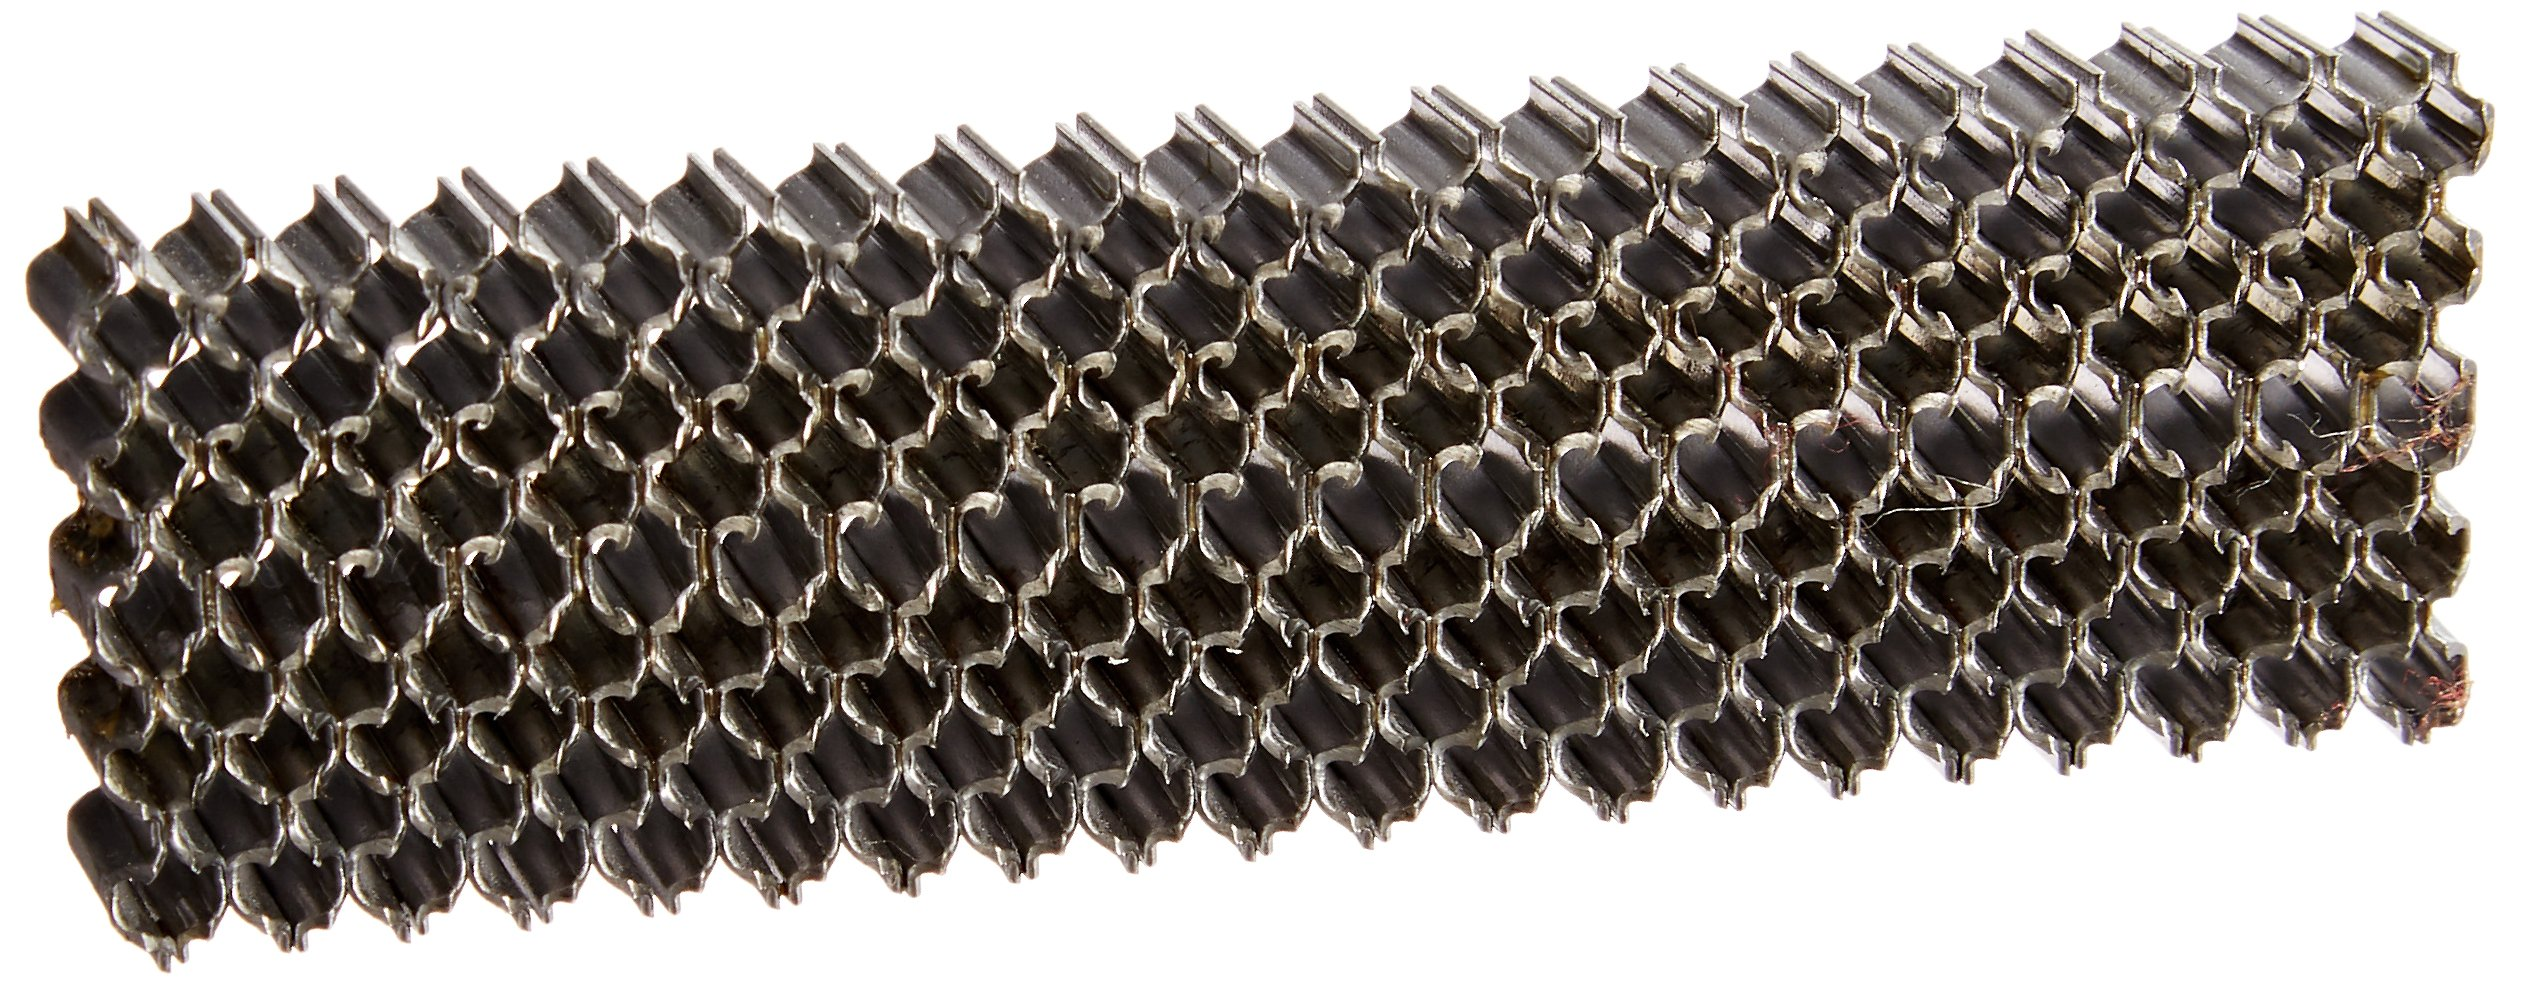 Grex Power Tools GCF25-10 25-Gauge 1-Inch Crown 3/8-InchLength Bright Corrugated Staples by Grex Power Tools